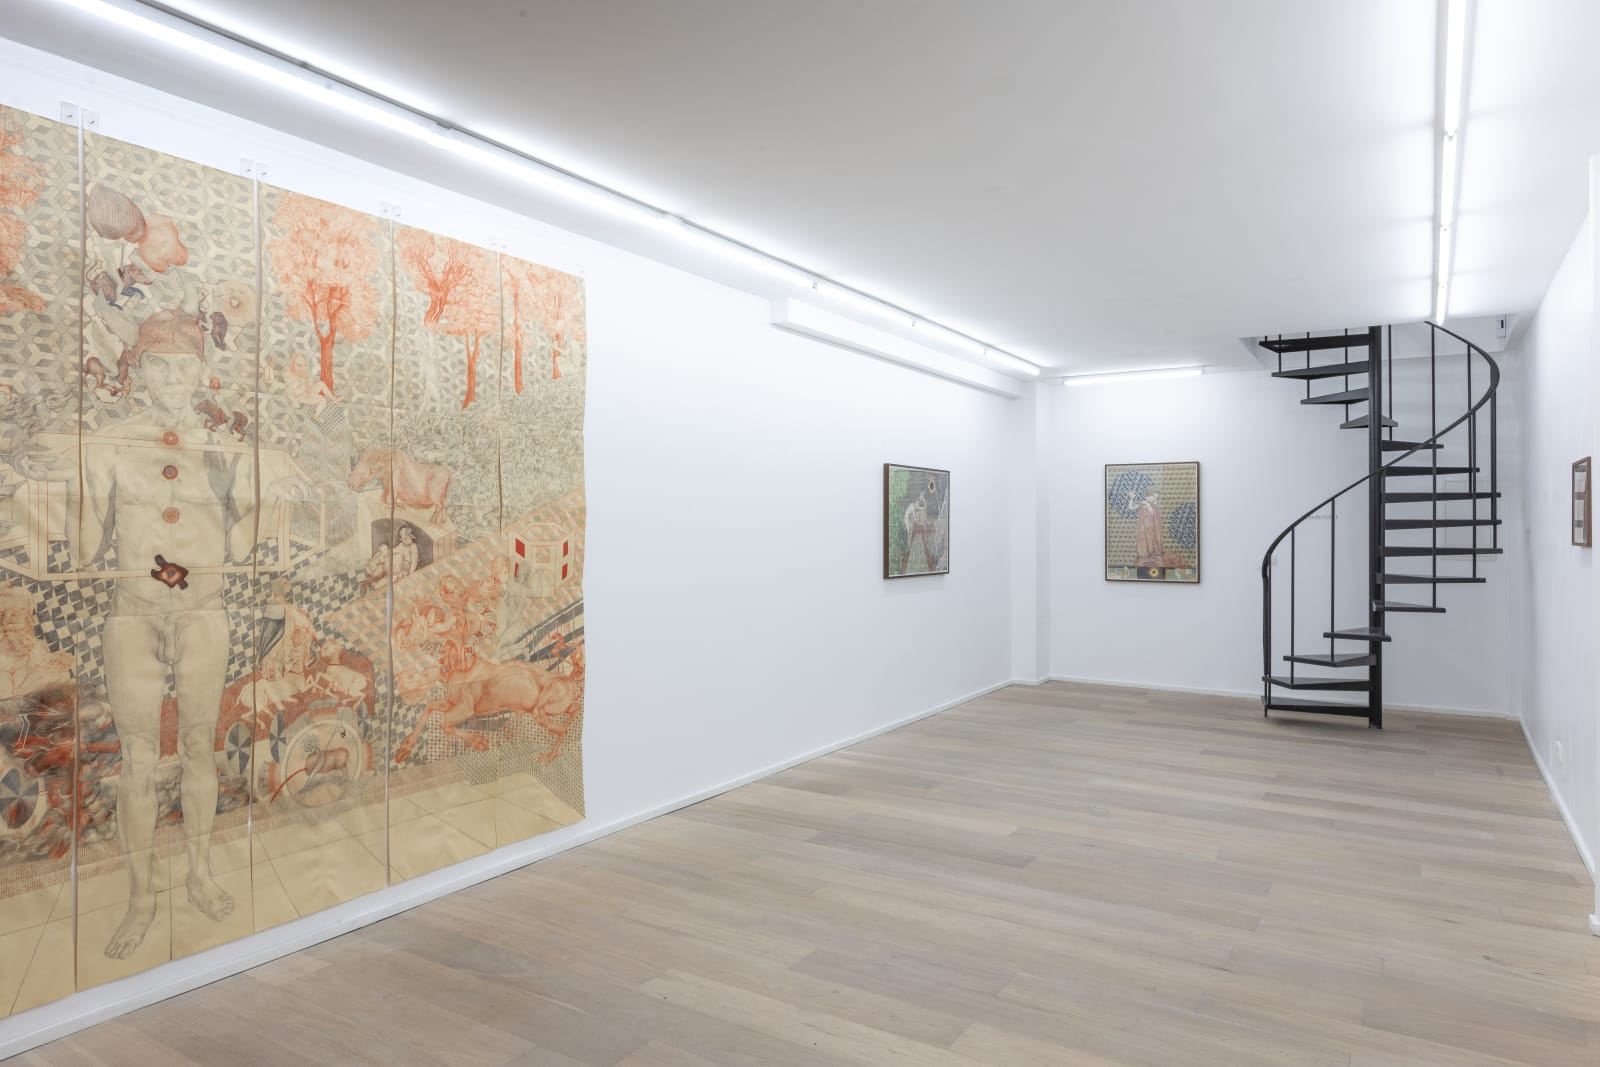 Installation view Solo Show The Great God Pan by Peter Depelchin at Husk Gallery